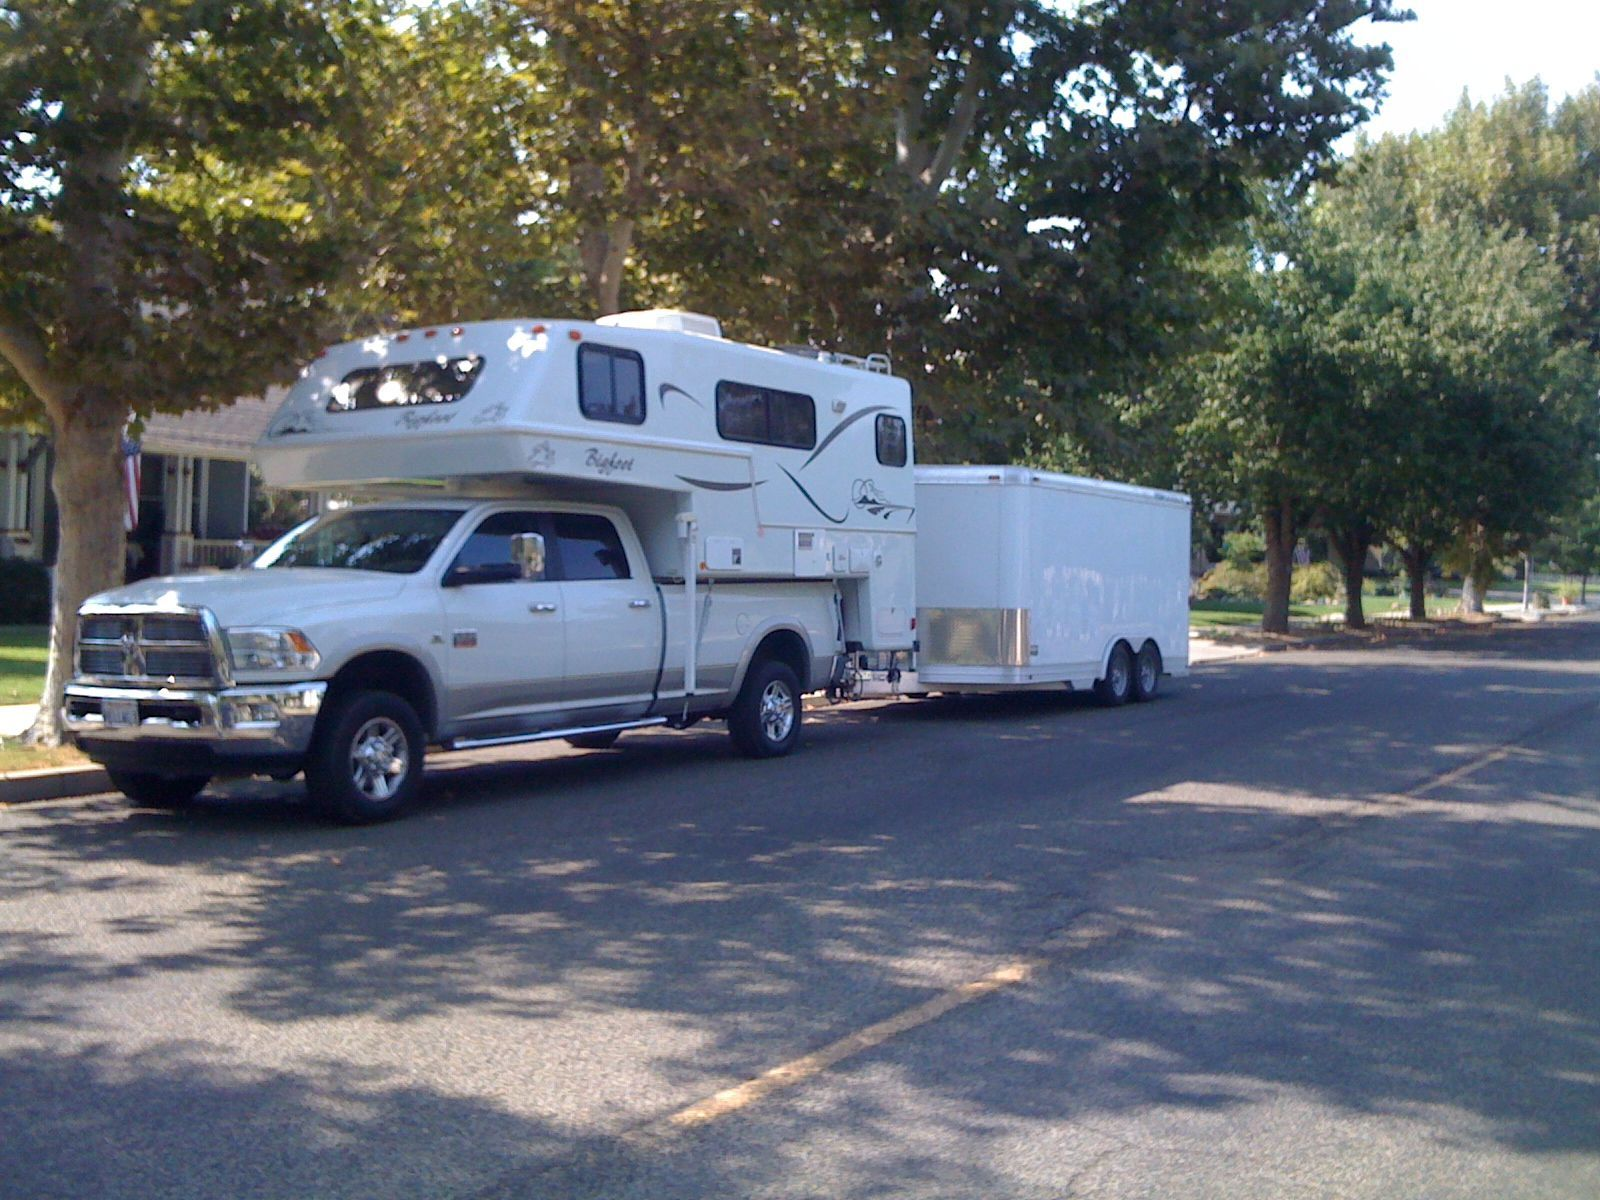 2011 Ram 3500 | Mark's Dodge and Towing Set Up